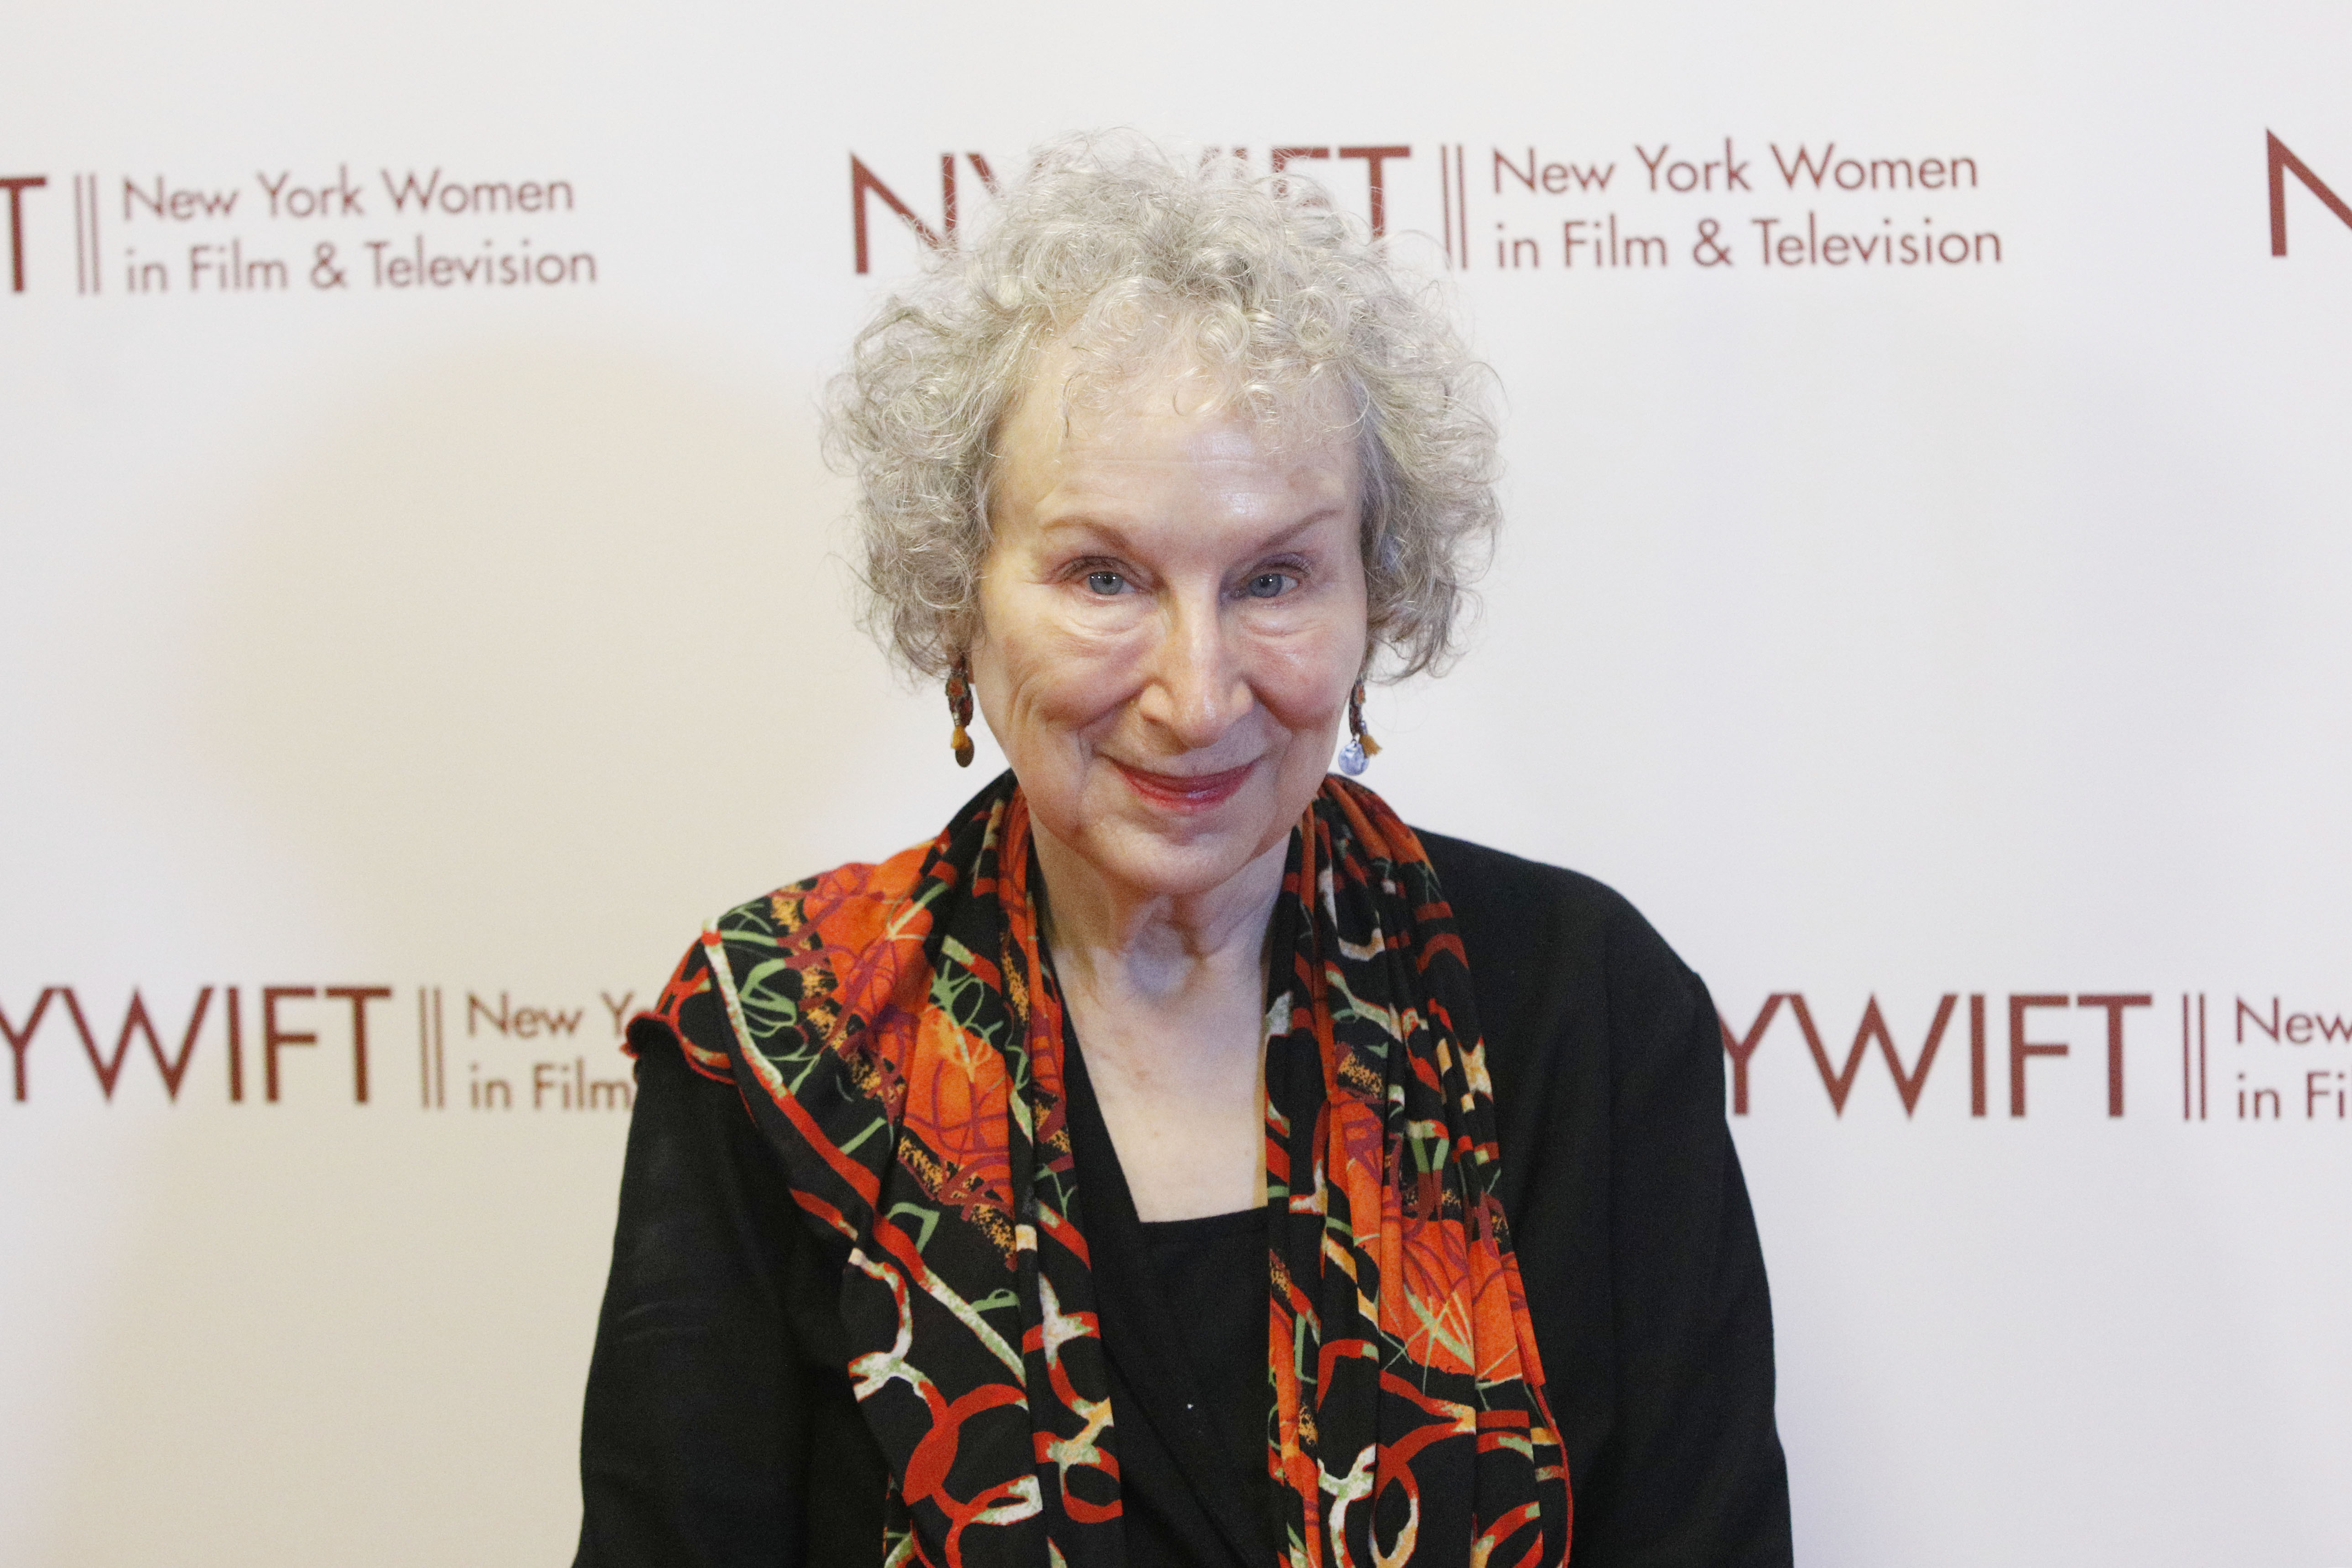 Margaret Atwood Wins a Dayton Literary Peace Prize